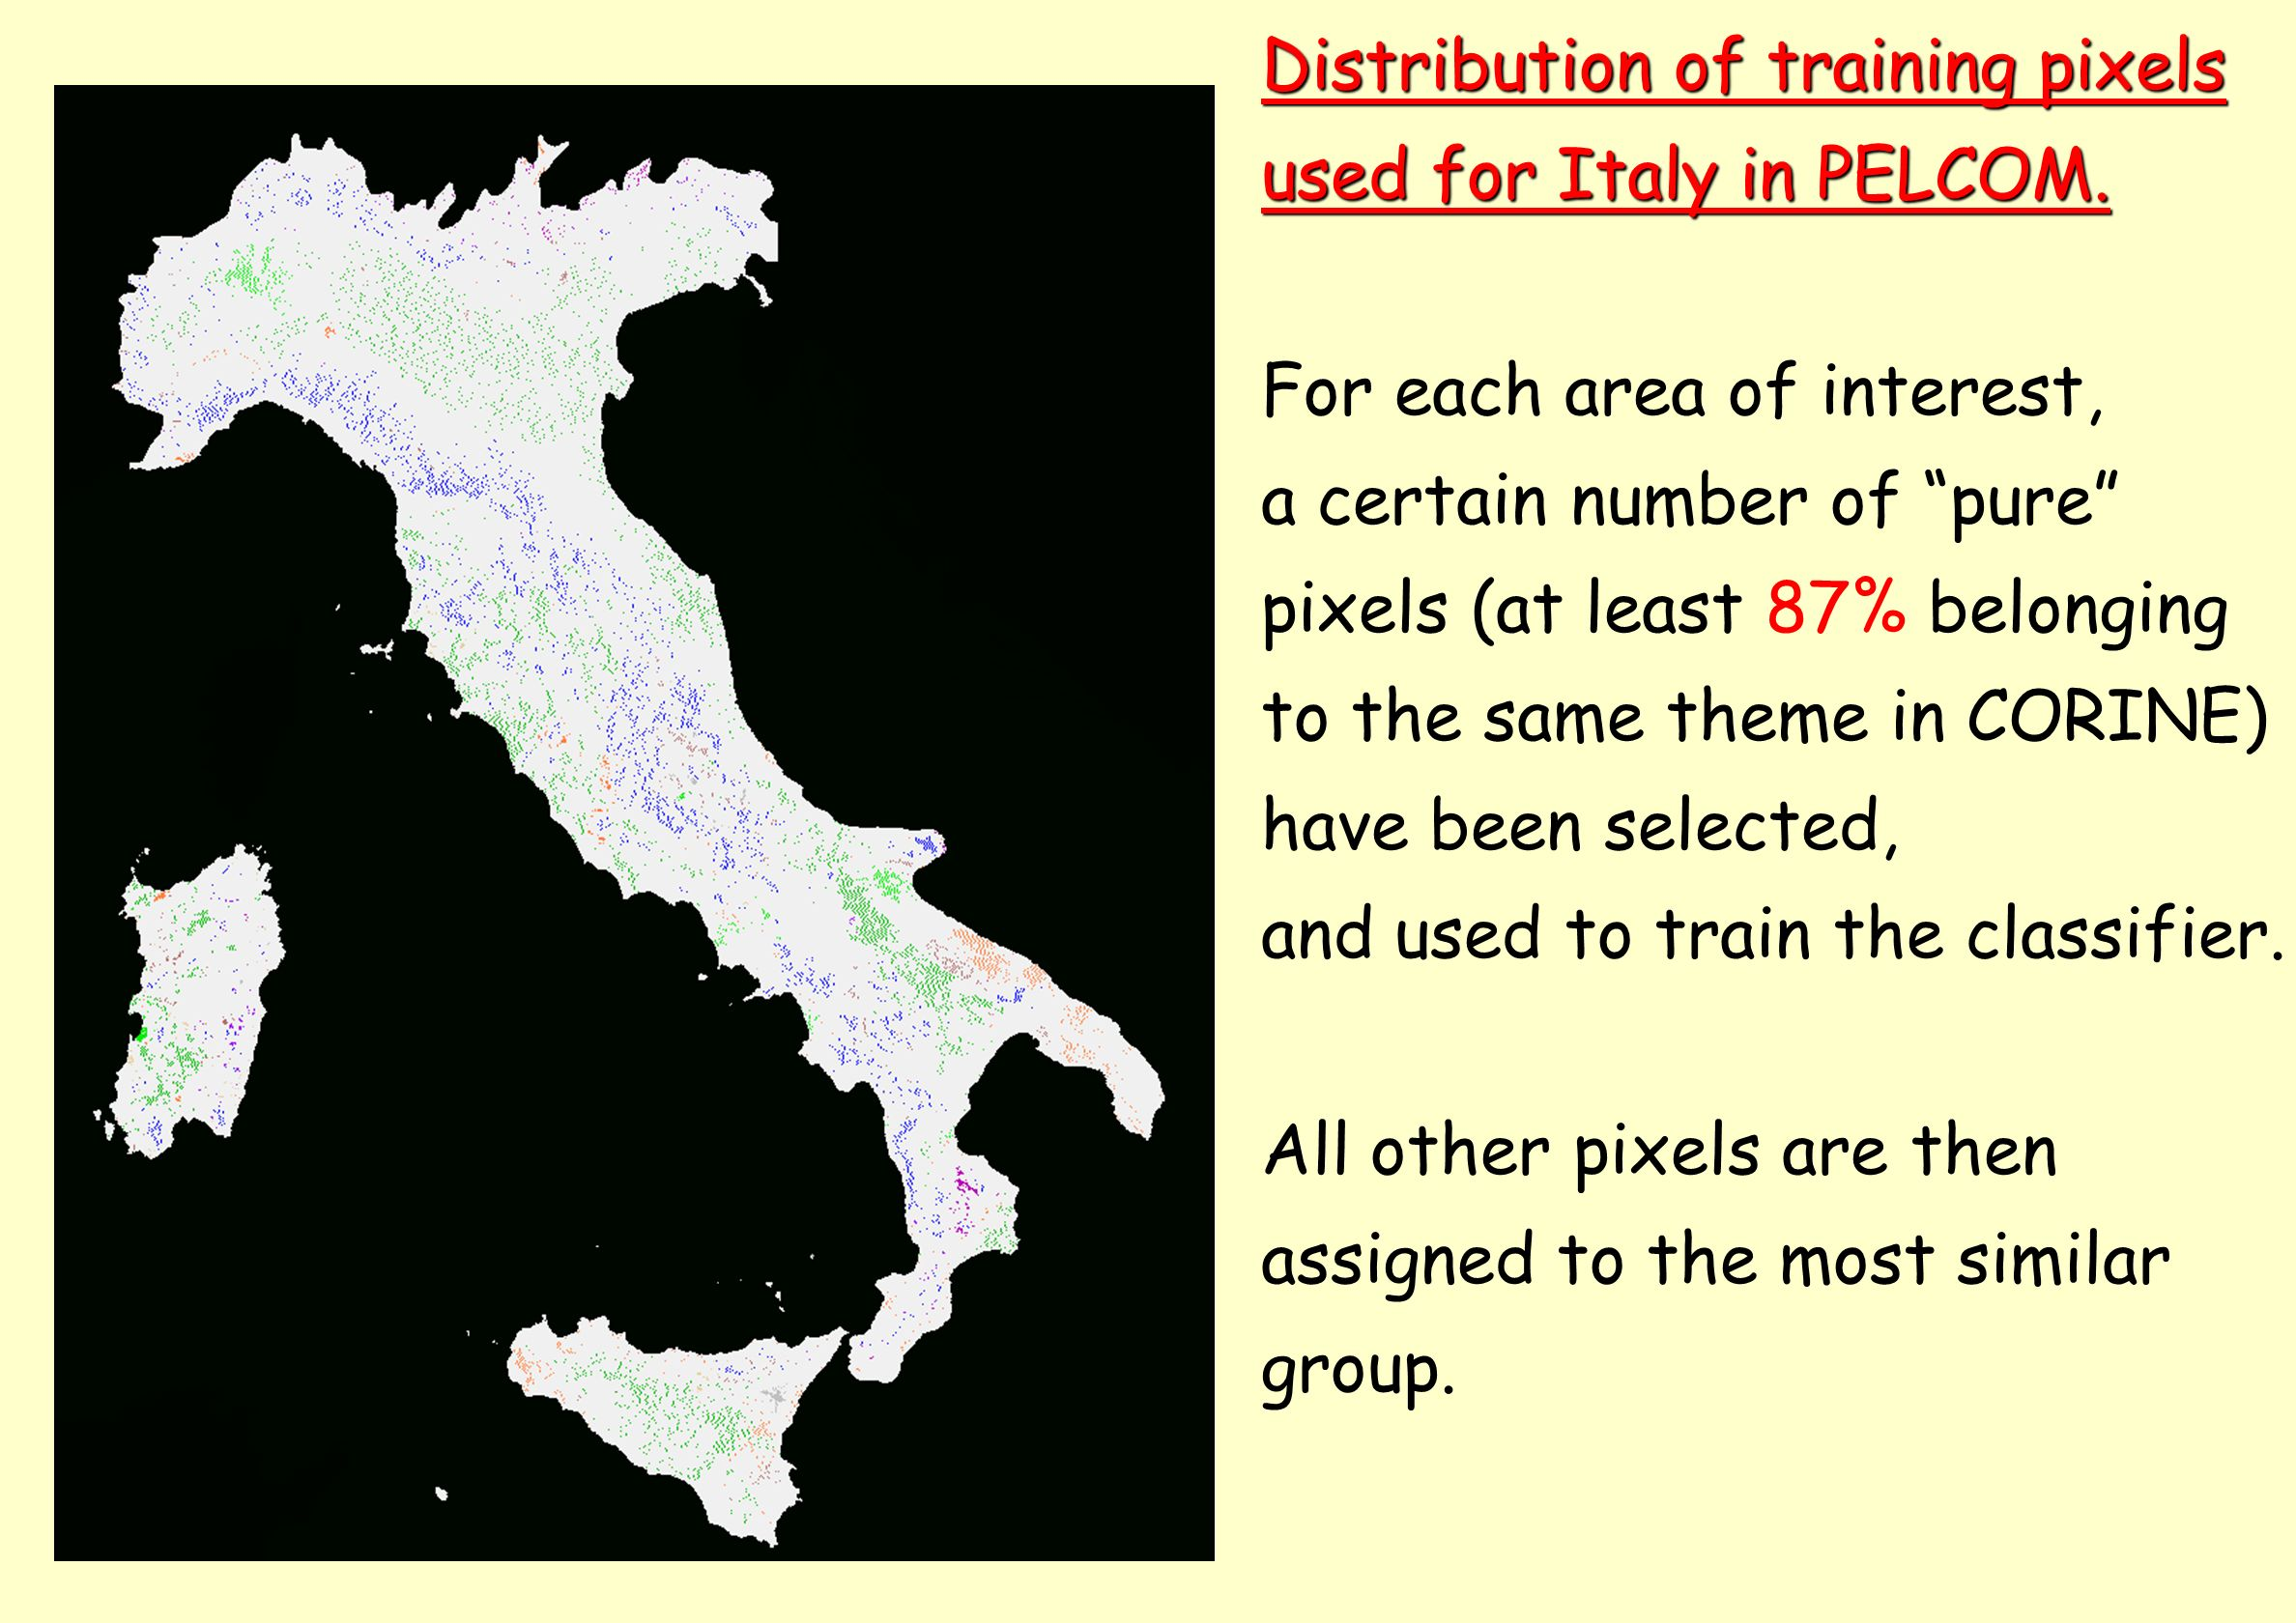 Distribution of training pixels